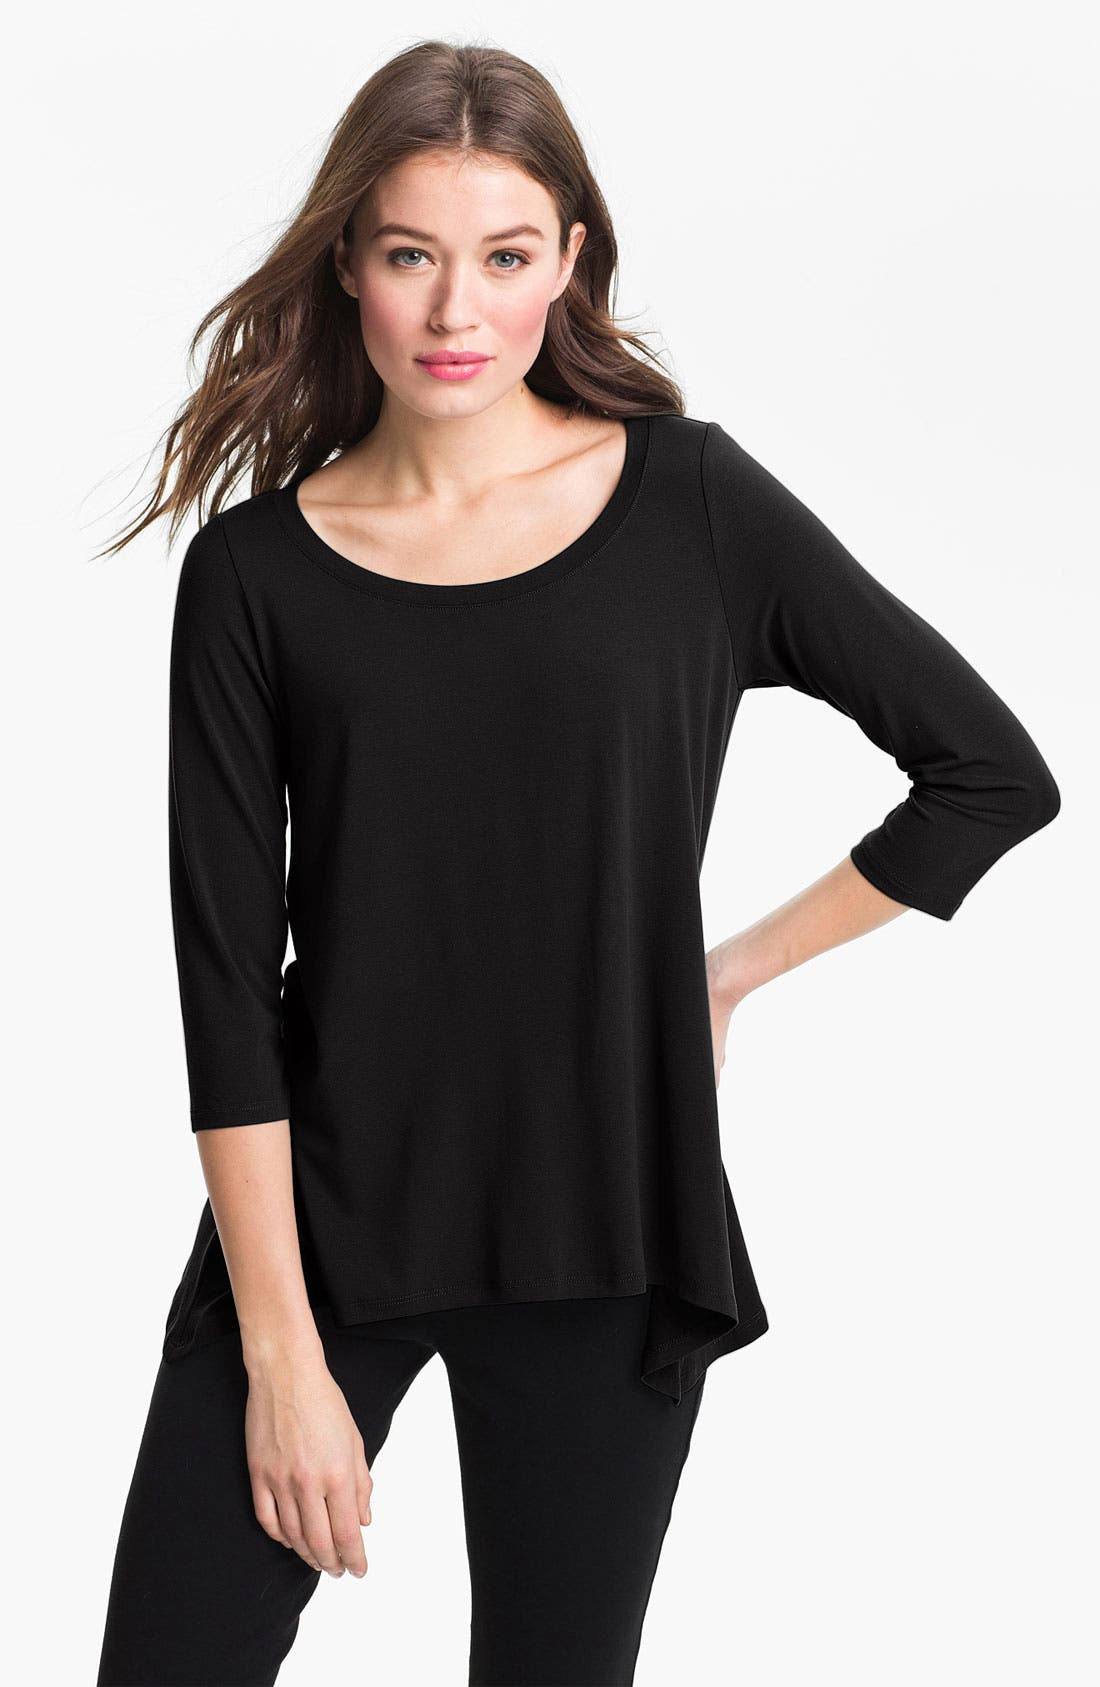 Alternate Image 1 Selected - Eileen Fisher Scoop Neck Three Quarter Sleeve Top (Regular & Petite) (Online Exclusive)